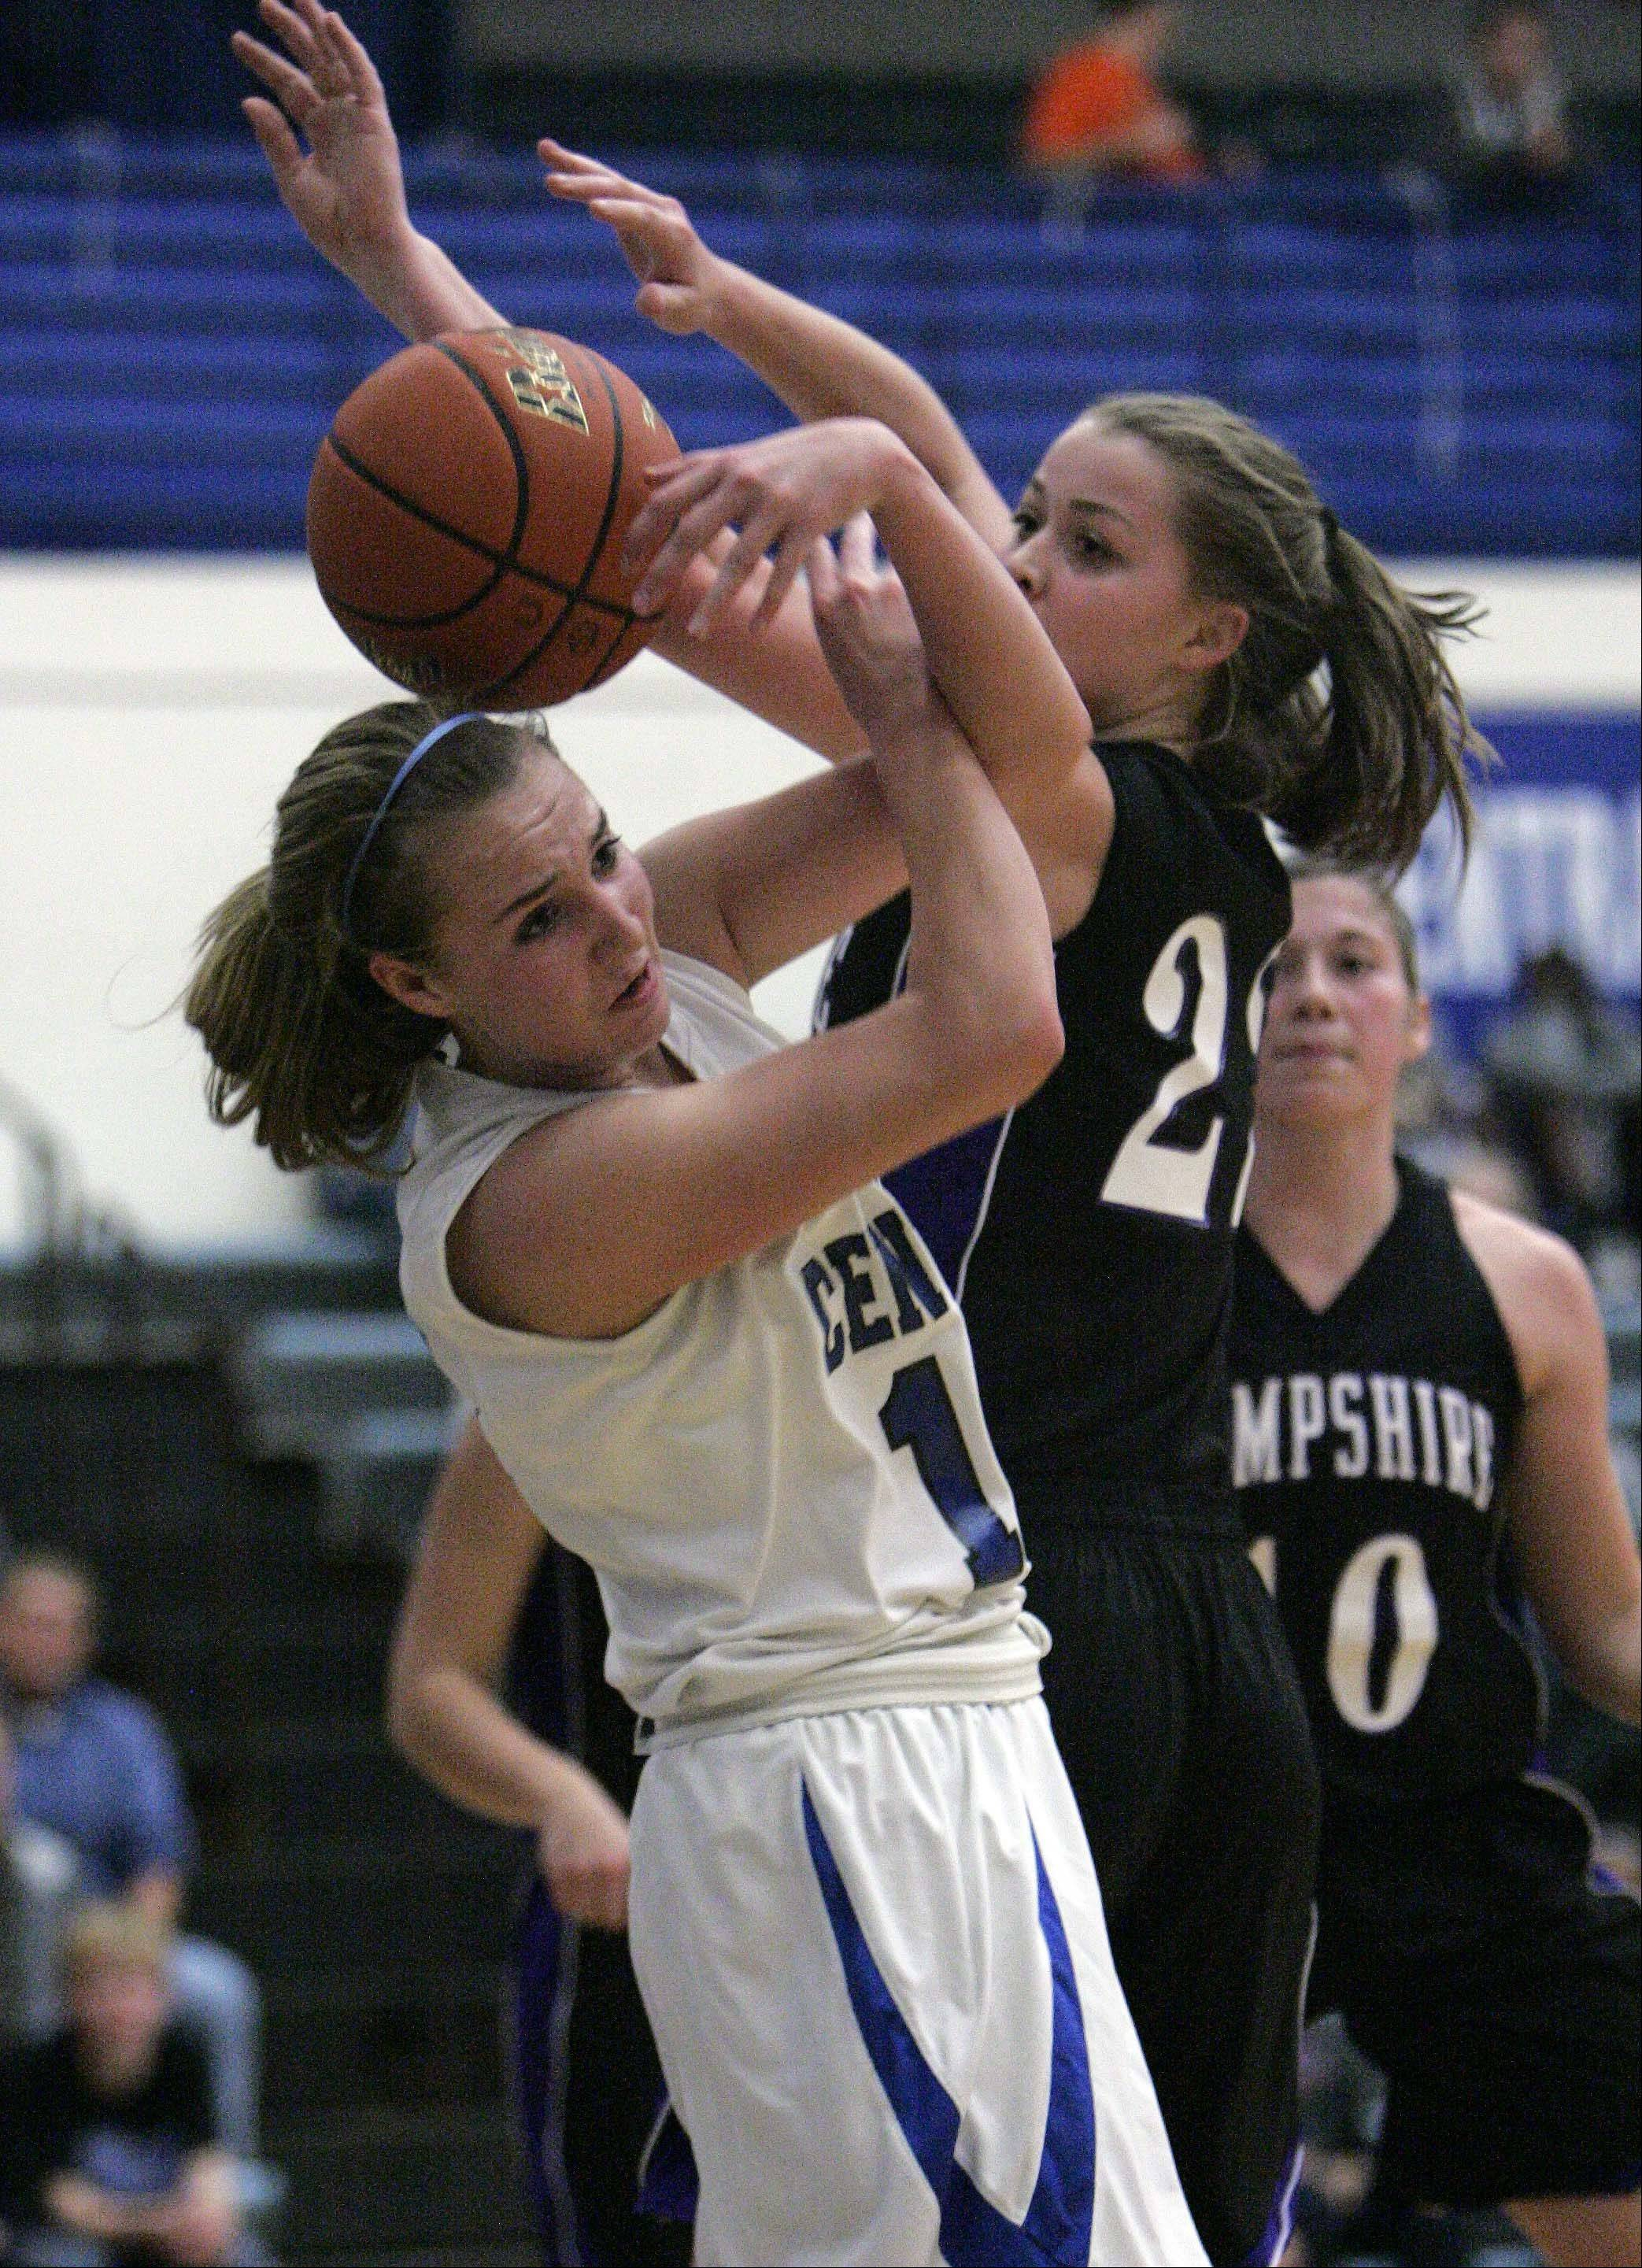 Burlington Central's Shelby Holt (12) and Hampshire c/f Emma Beniot (22) get tangled up trying to grab a loose rebound during Hampshire at Burlington Central girls basketball Saturday December 8, 2012. 12 22